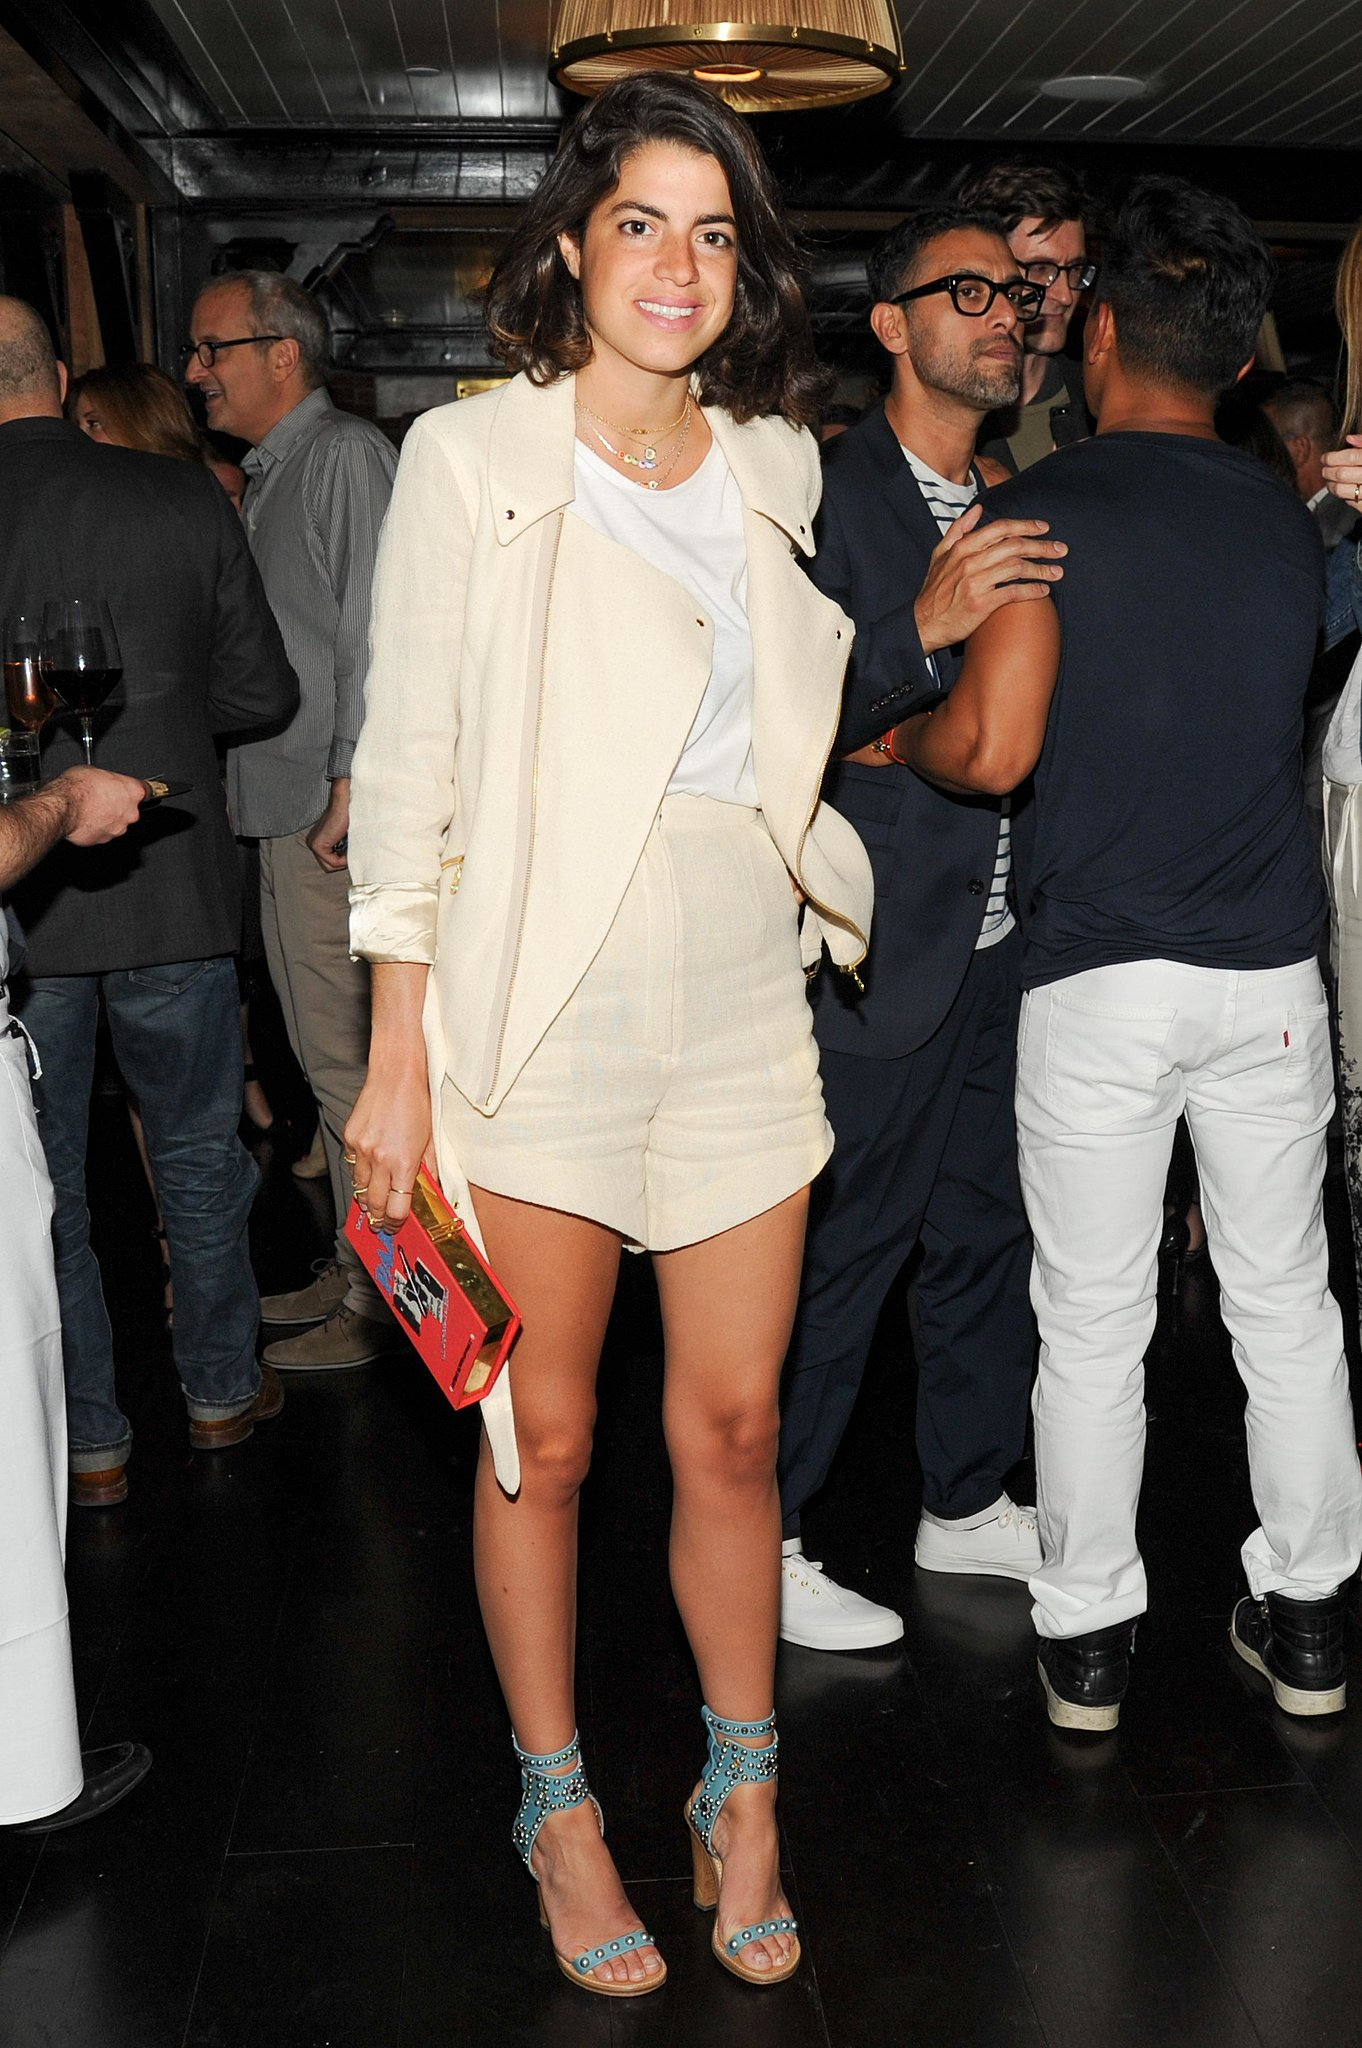 Leandra Medine at the J.Crew and CFDA/Vogue Fashion Fund dinner in NYC. Sour